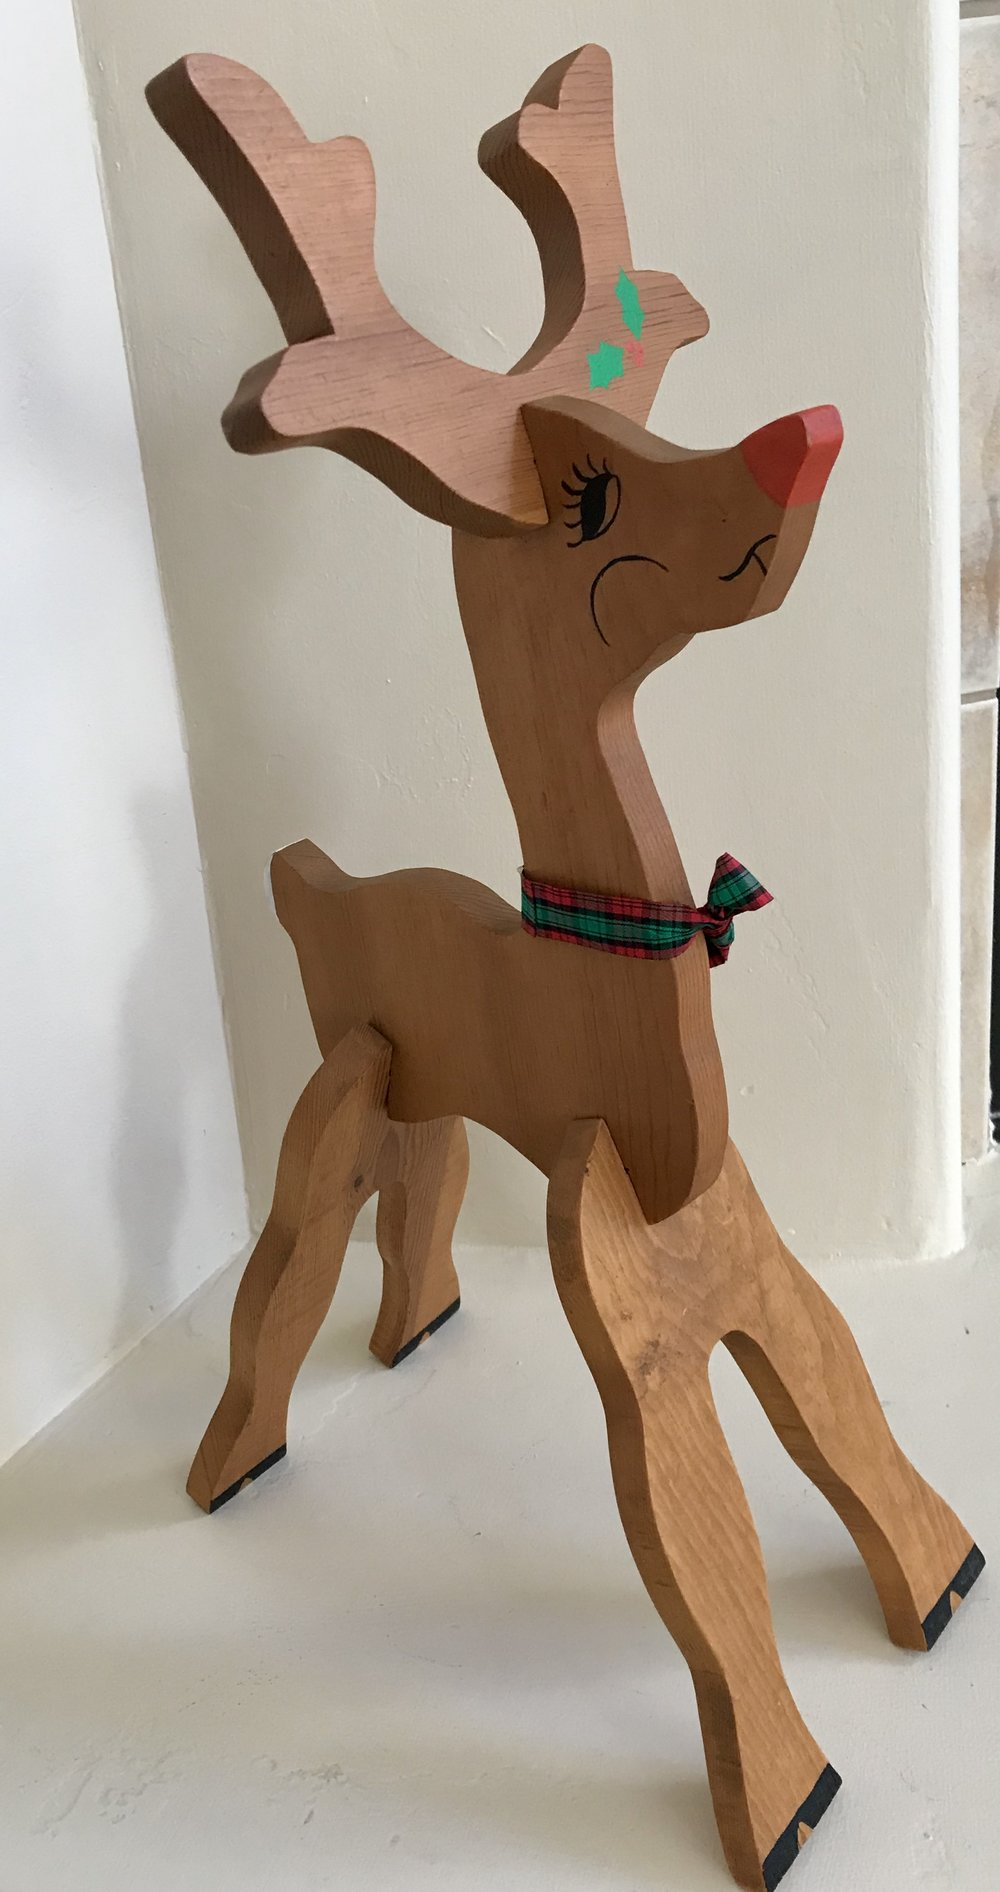 My father crafted this Rudolph.